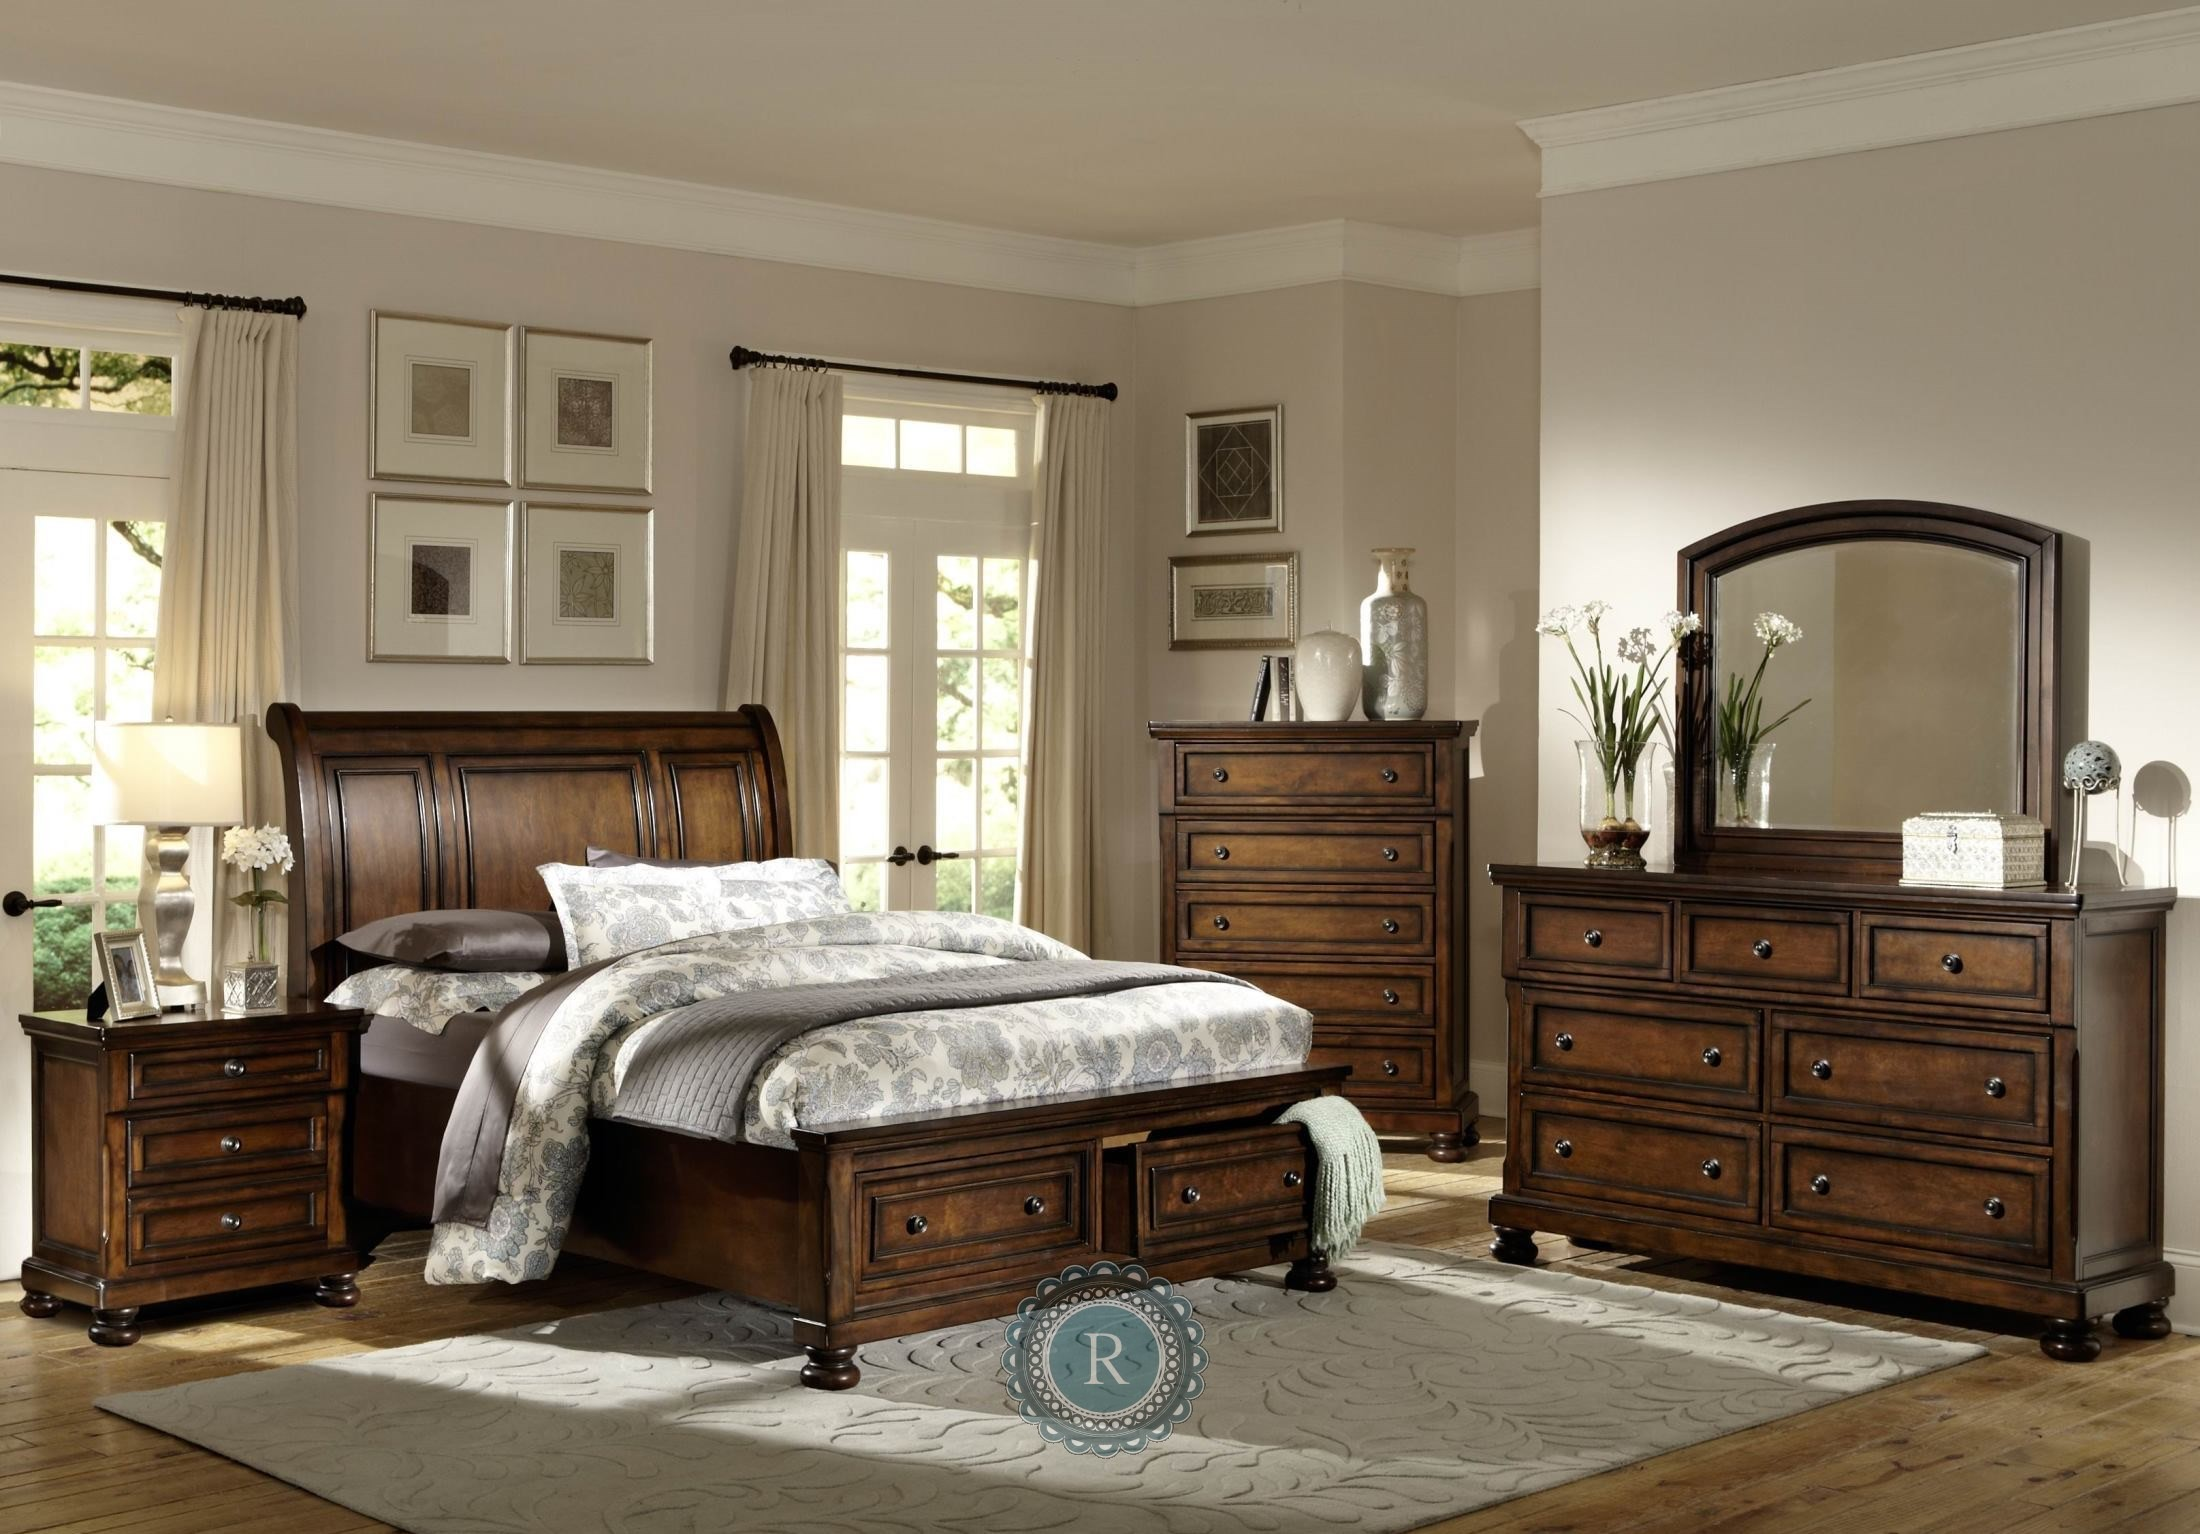 Cumberland Platform Storage Bedroom Set from Homelegance